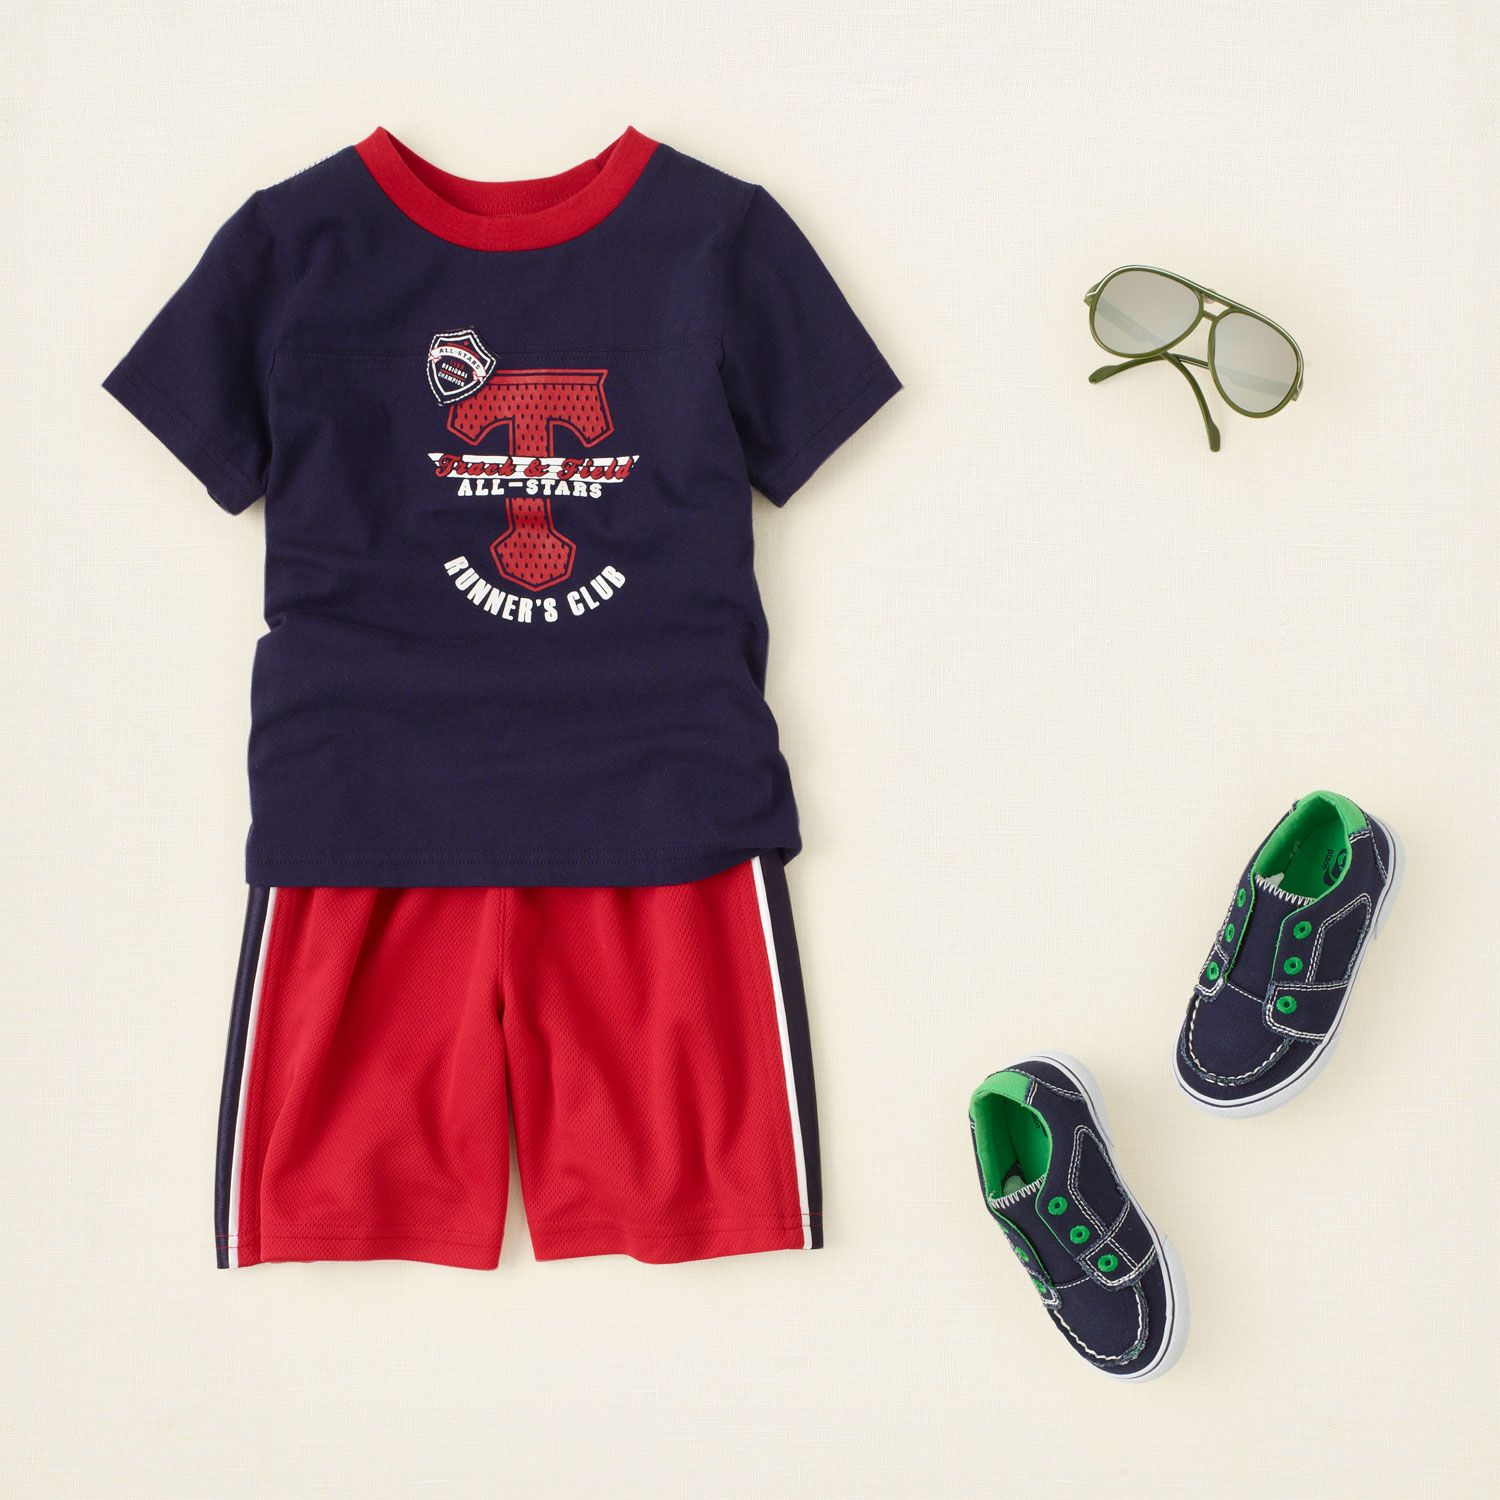 077ecc37d baby boy - outfits - sport zone - all pro